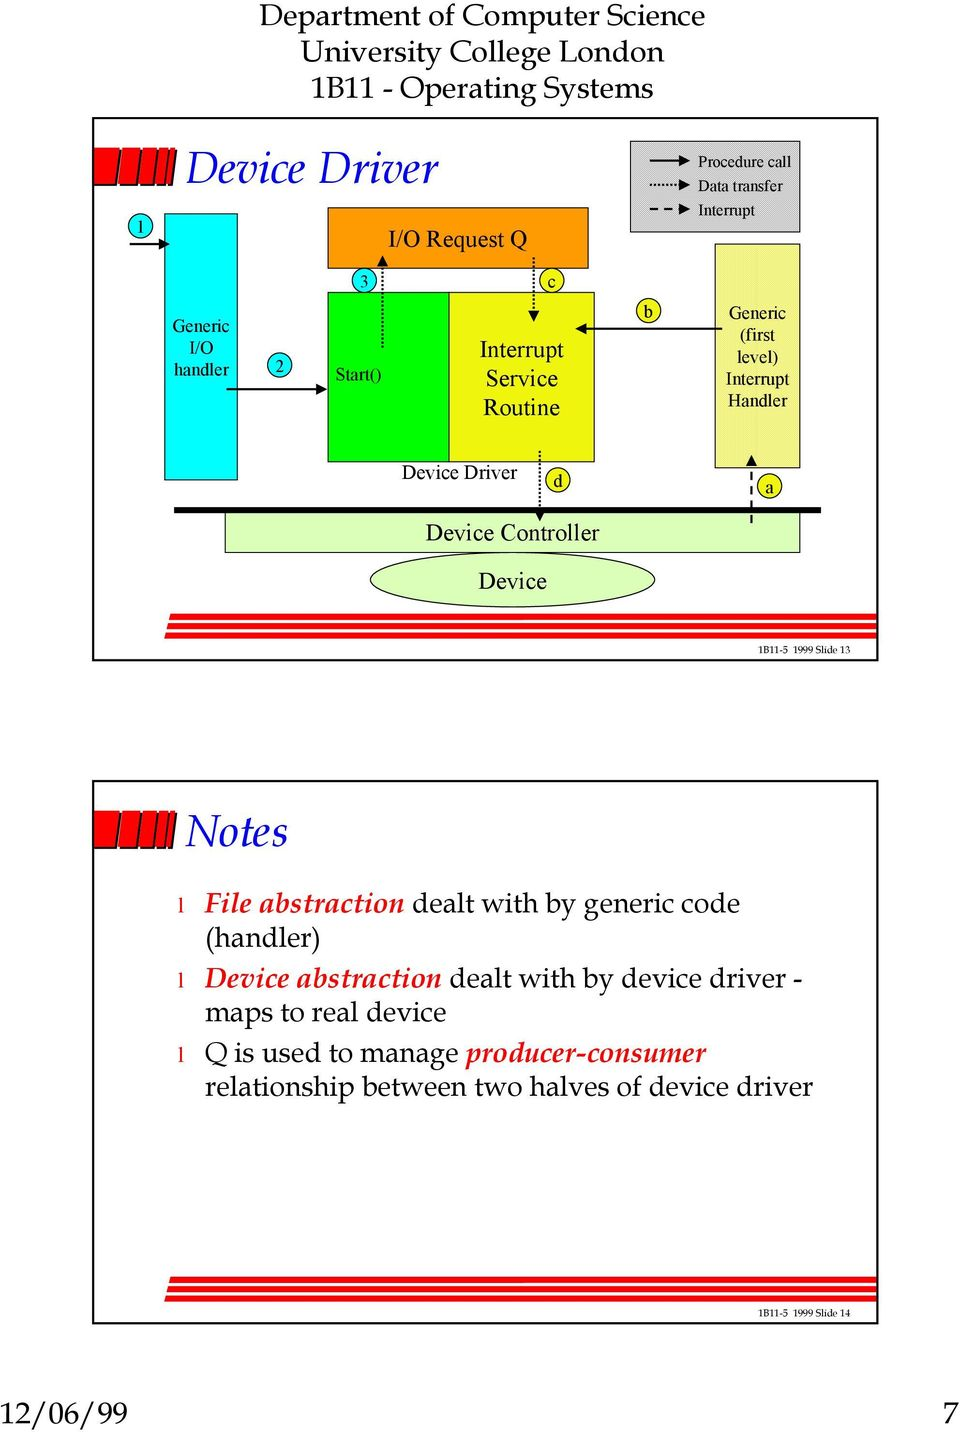 Notes Fie abstraction deat with by generic code (hander) abstraction deat with by device driver - maps to rea